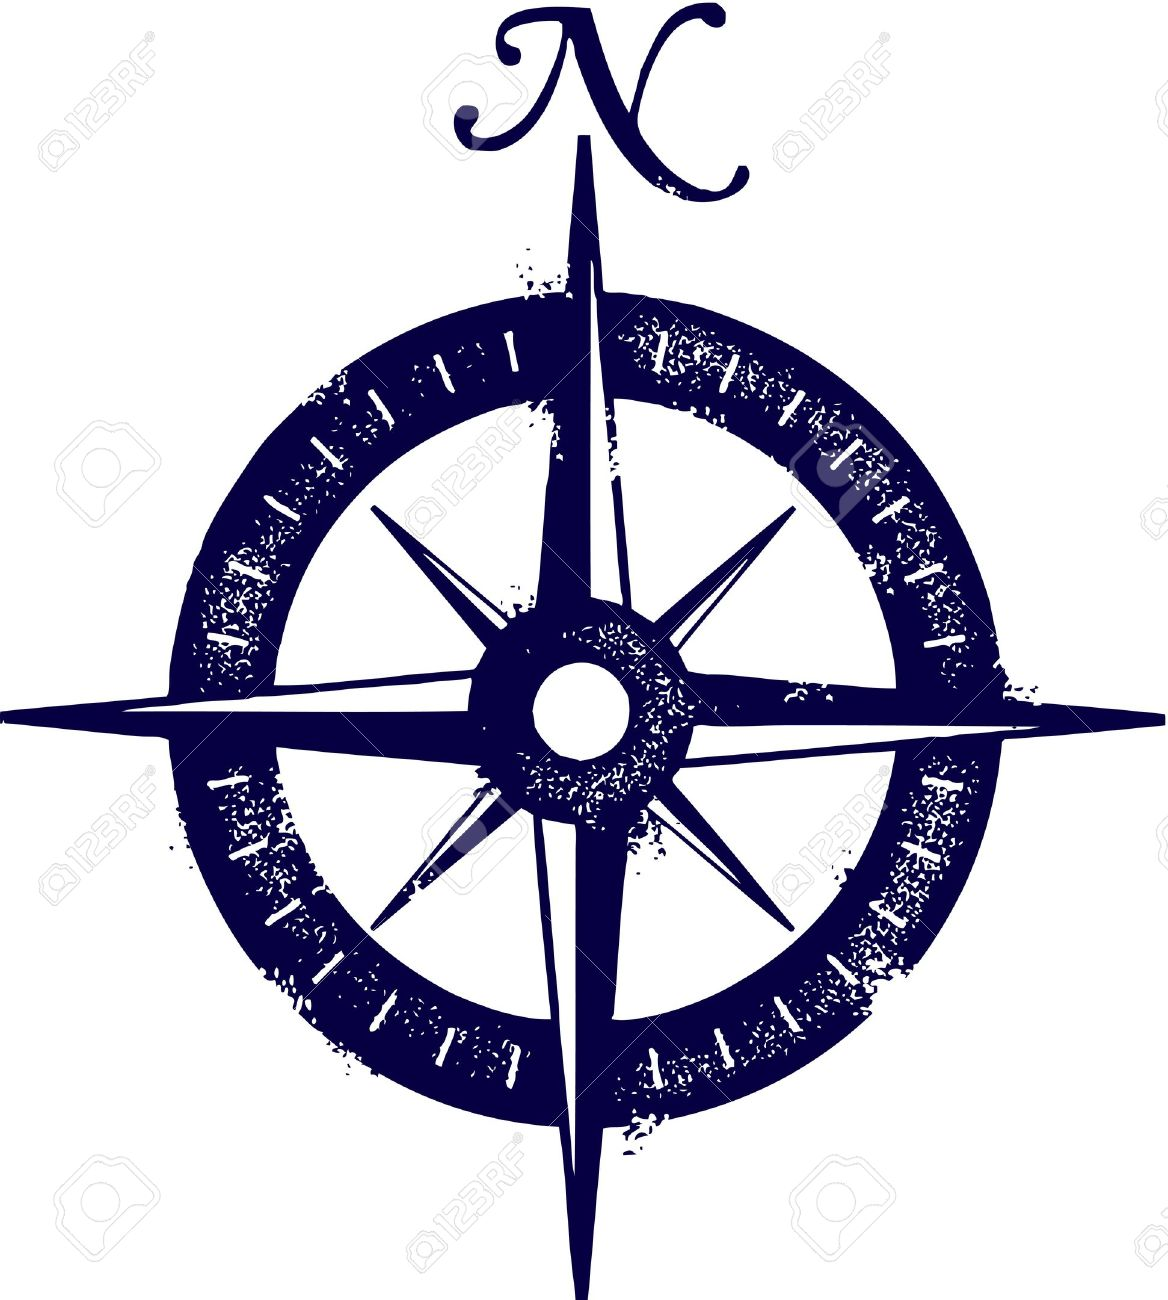 Vintage Compass Royalty Free Cliparts, Vectors, And Stock ...